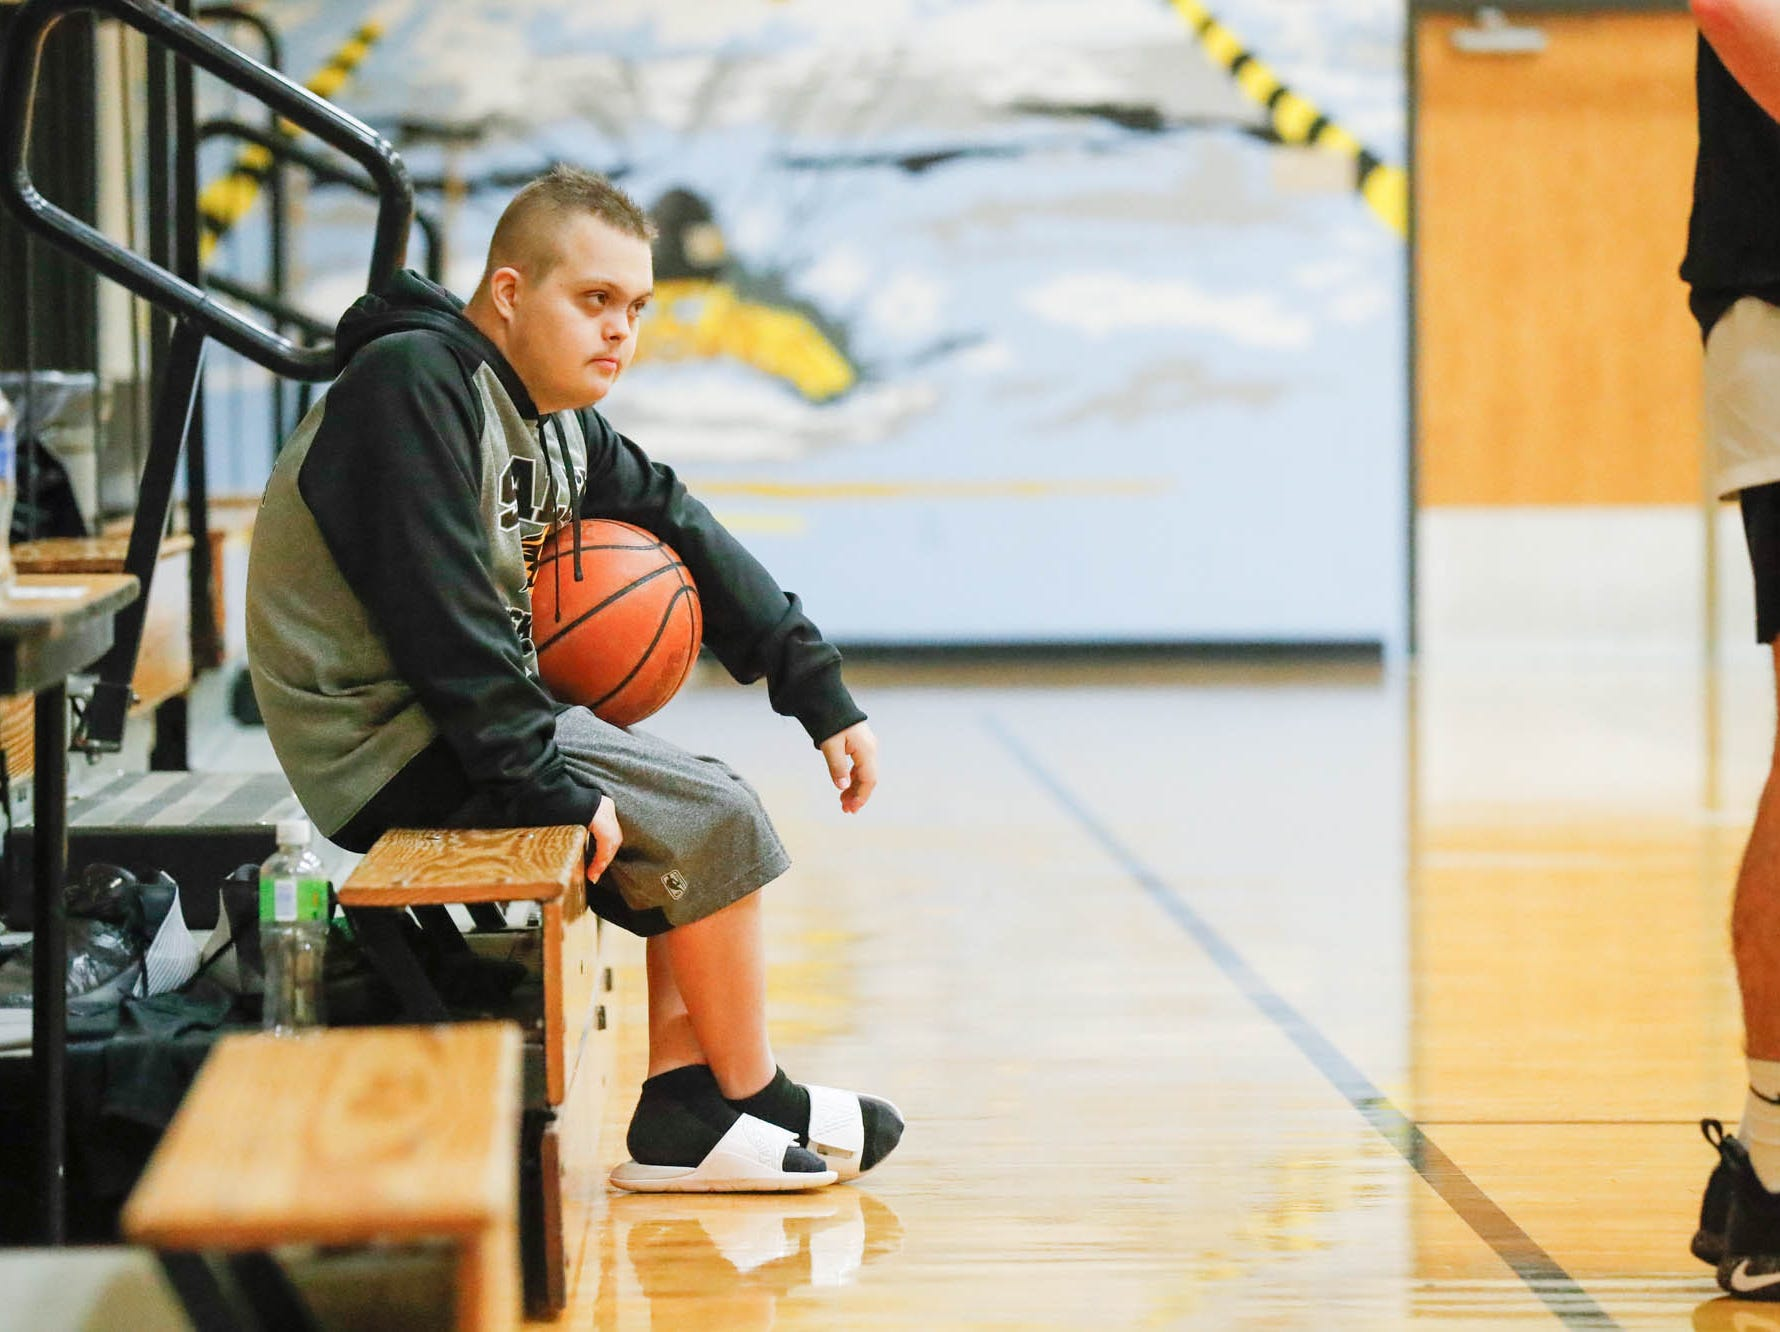 Jalen Pigg, the step son of Salem High School Boys Basketball Coach, Mike Brown, rests on the bleachers during a team practice at Salem High School in Salem Ind. on Tuesday, Jan. 23, 2019. Jalen, who was born with Down Syndrome, is now battling a form of leukemia but has a lot of support from the team. After a stint at Riley Children's Hospital during the holidays, Pigg is working to build his strength and endurance back up.